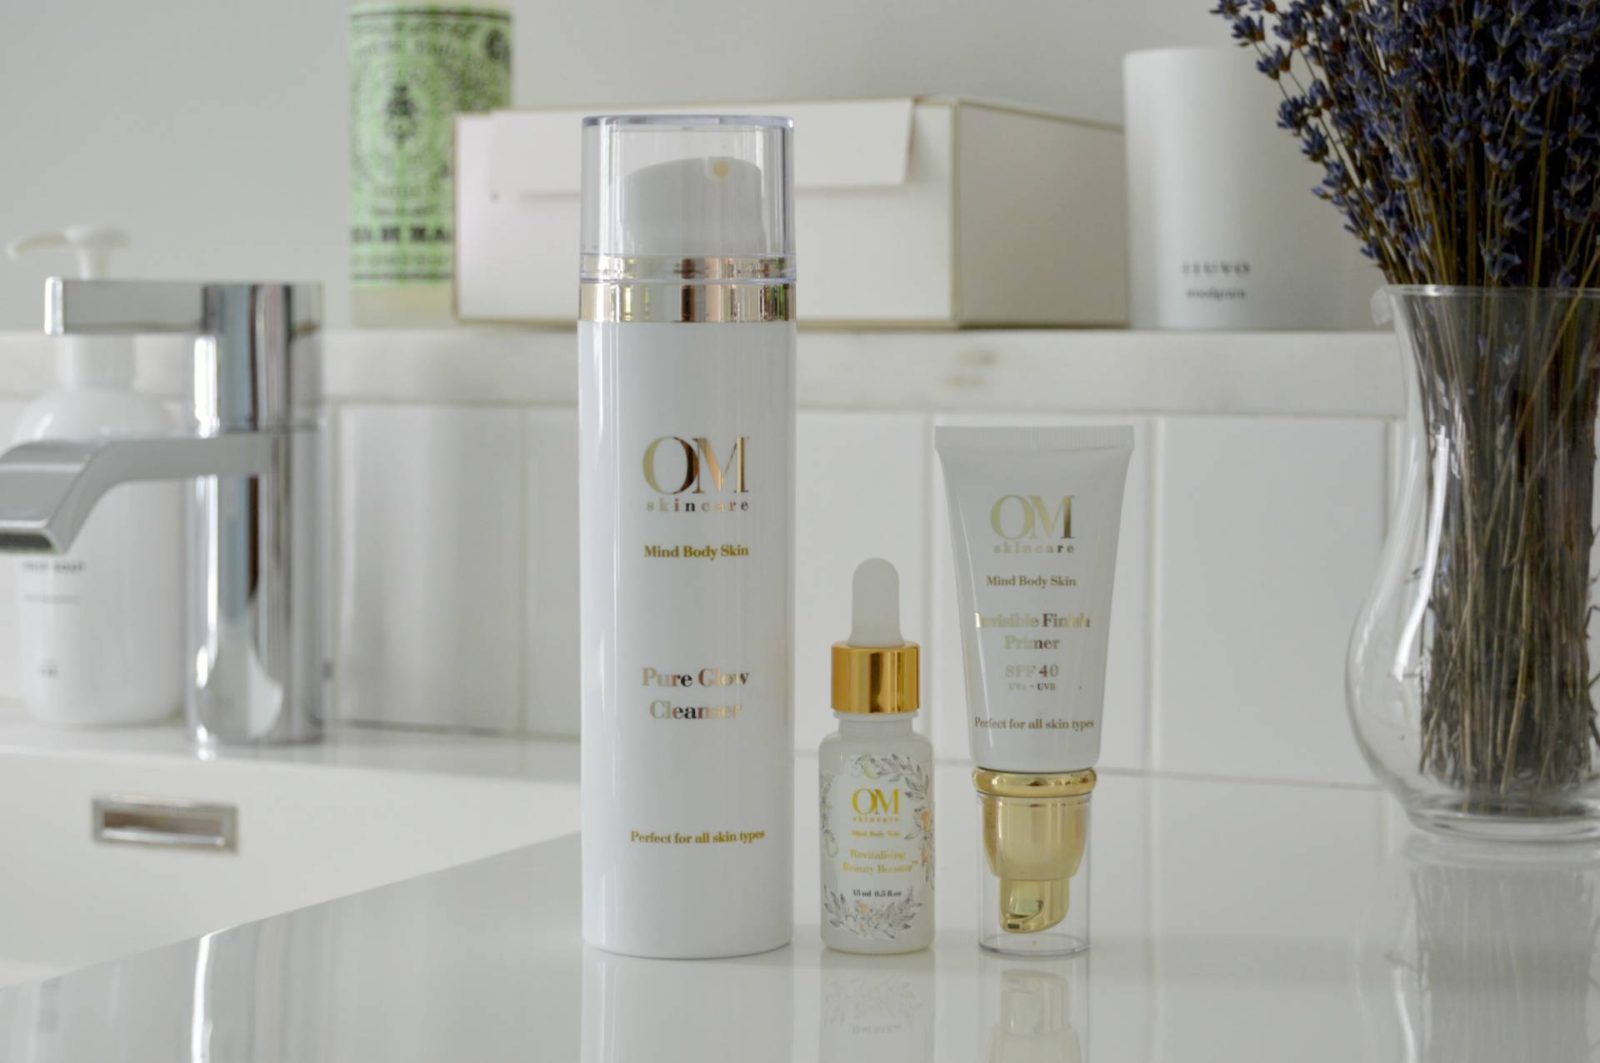 OM Skincare – 'Meditation' for your skin